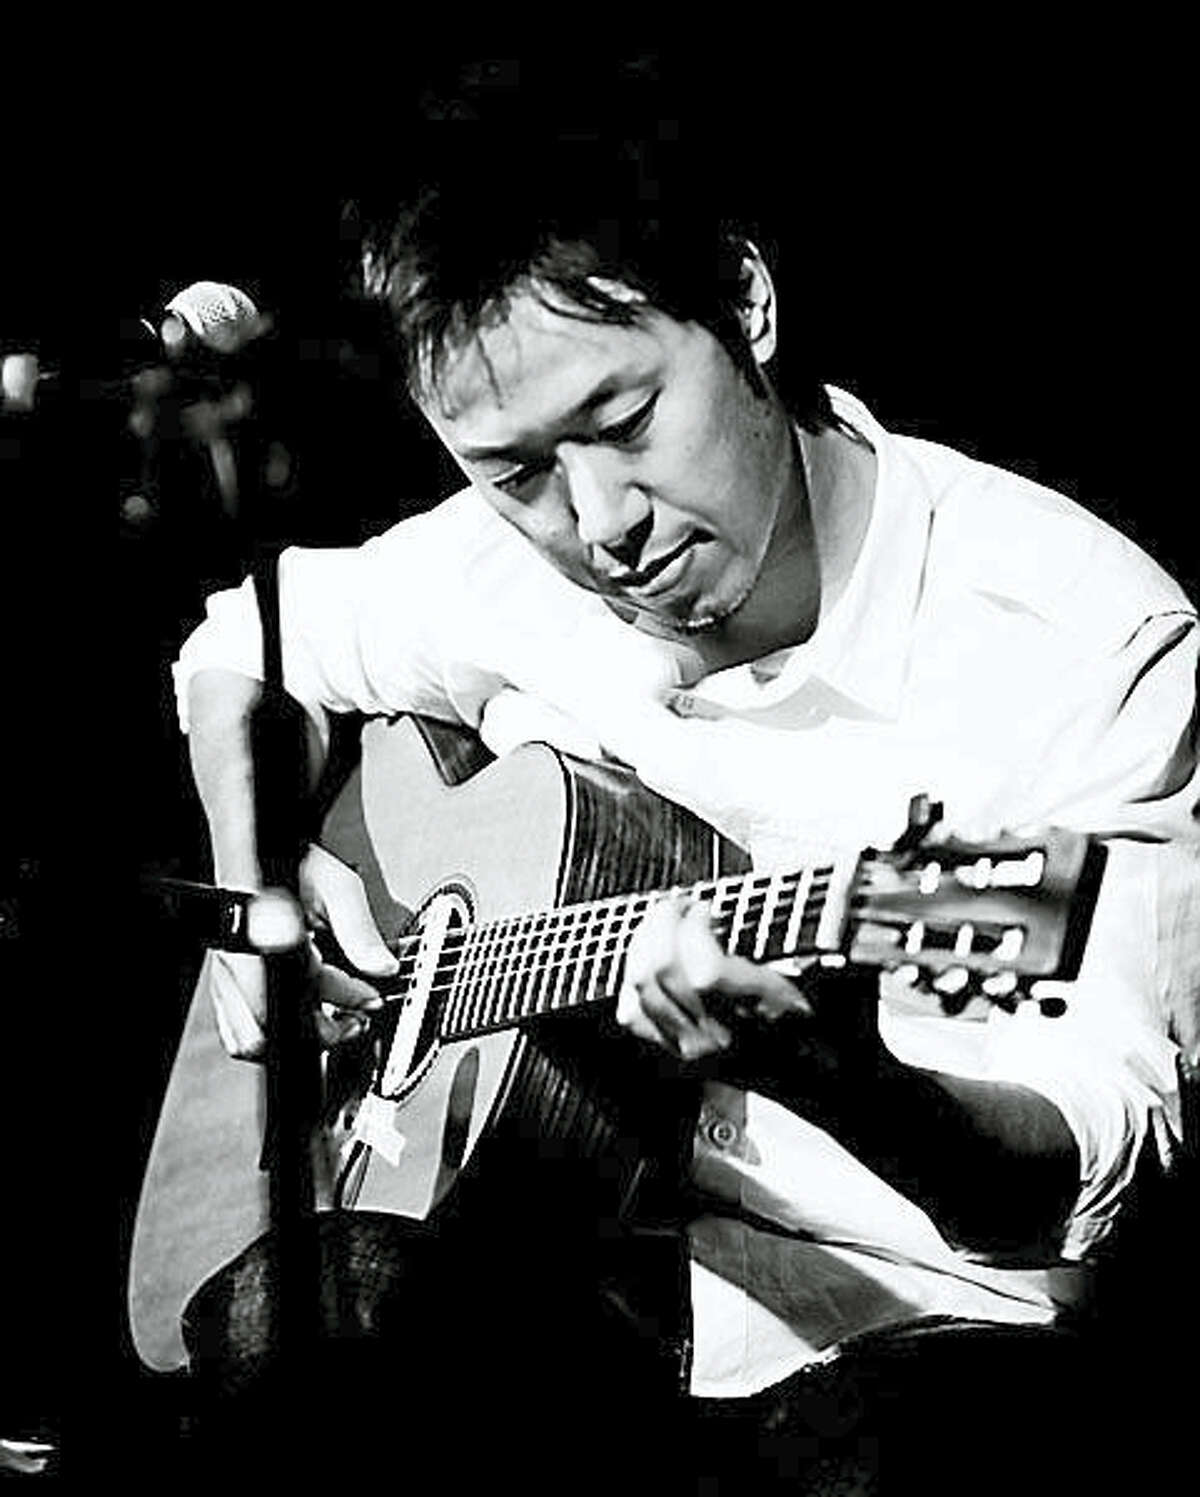 Contributed photoGuitarist Hiroya Tsukamoto performs Nov. 20 at the Leif Nilsson Spring Street Studio & Gallery for its Concert in the Garden series.